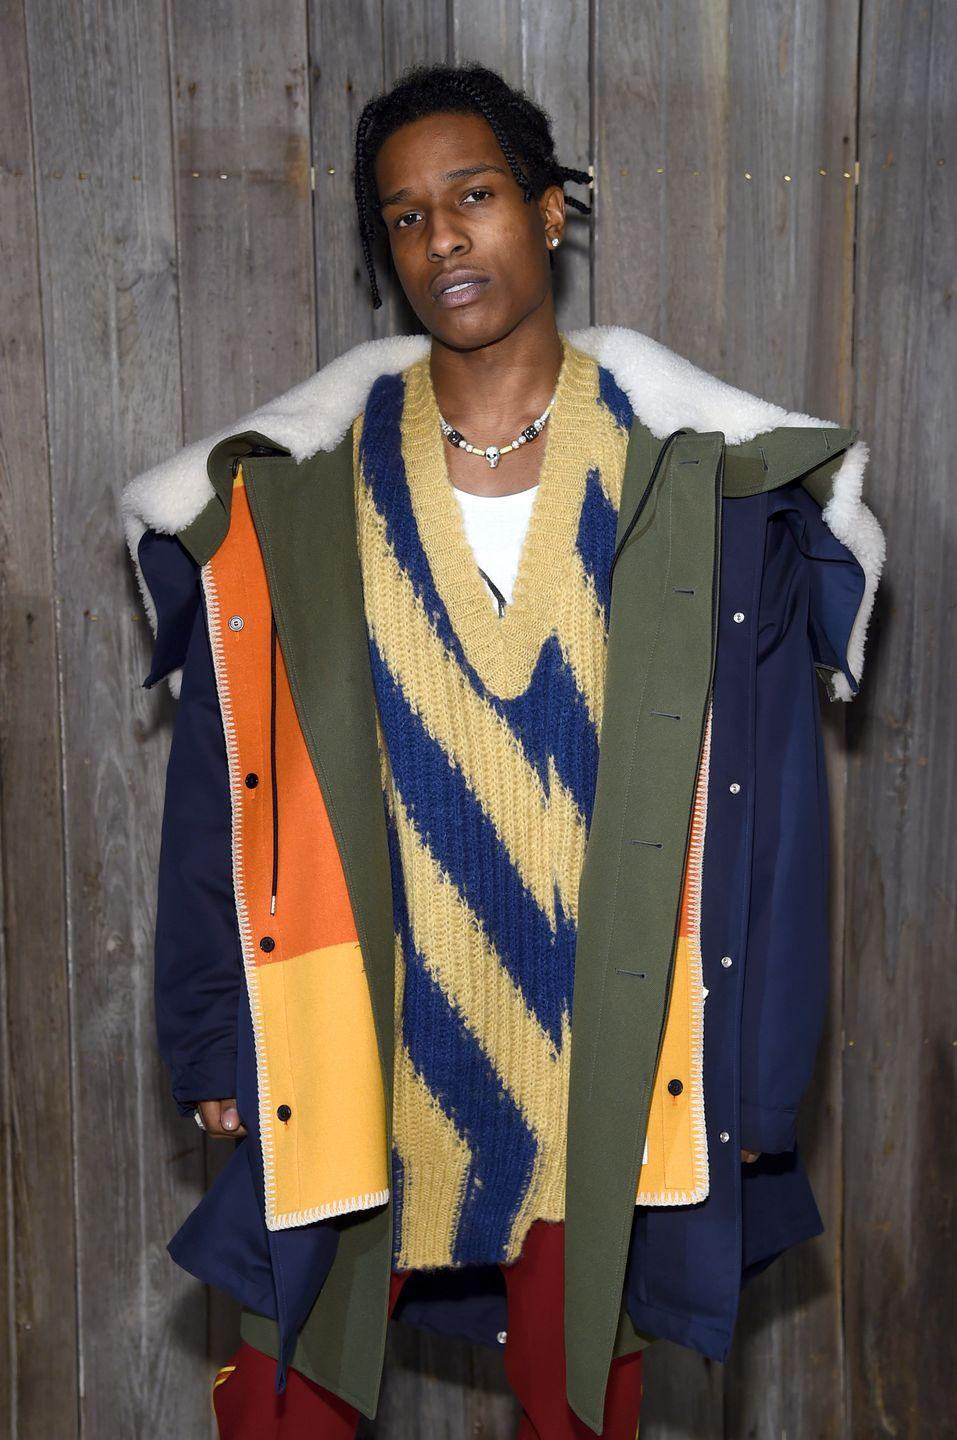 "<p>In June 2019, TMZ <a href=""https://www.tmz.com/2019/07/01/asap-rocky-crew-jumps-guy-beatdown-stockholm-sweden/"" rel=""nofollow noopener"" target=""_blank"" data-ylk=""slk:released a video"" class=""link rapid-noclick-resp"">released a video</a> showing that A$AP Rocky got into a street fight while in Sweden. Days later, Rocky was detained for a ""suspected attack"" by a Swedish court, although Rocky maintained he was acting in self-defense. His detainment and arrest attracted the attention of everyone from Kim Kardashian to Donald Trump, who warned Sweden of ""negative consequences"" if they didn't release Rocky from prison. Although Rocky was <a href=""https://www.nbcnews.com/news/world/asap-rocky-found-guilty-assault-spared-jail-swedish-trial-drew-n1042126"" rel=""nofollow noopener"" target=""_blank"" data-ylk=""slk:found guilty"" class=""link rapid-noclick-resp"">found guilty</a>, he wasn't given any jail time.</p>"